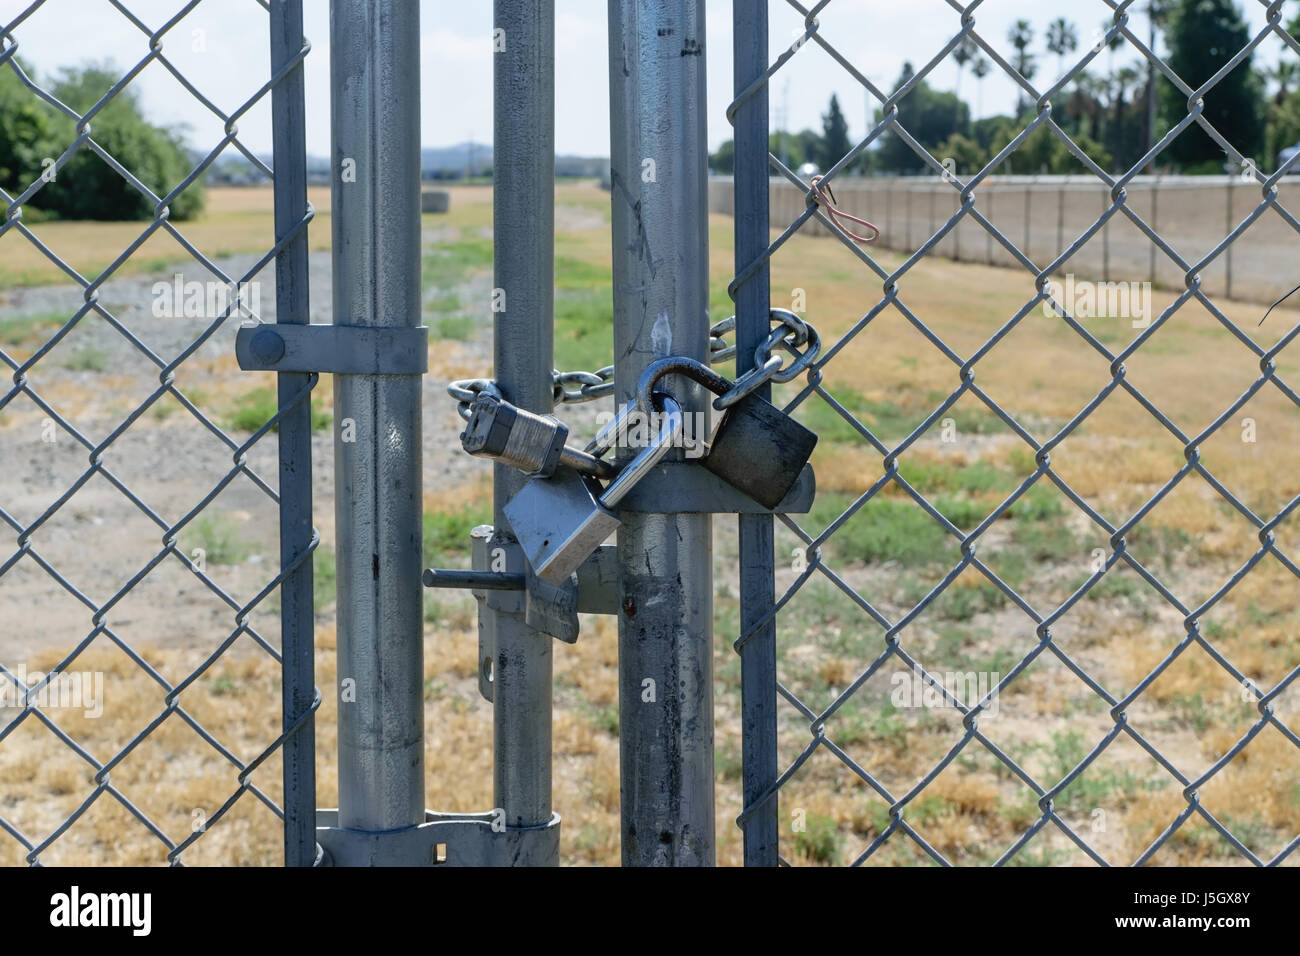 Three locks secure gate on fence - Stock Image